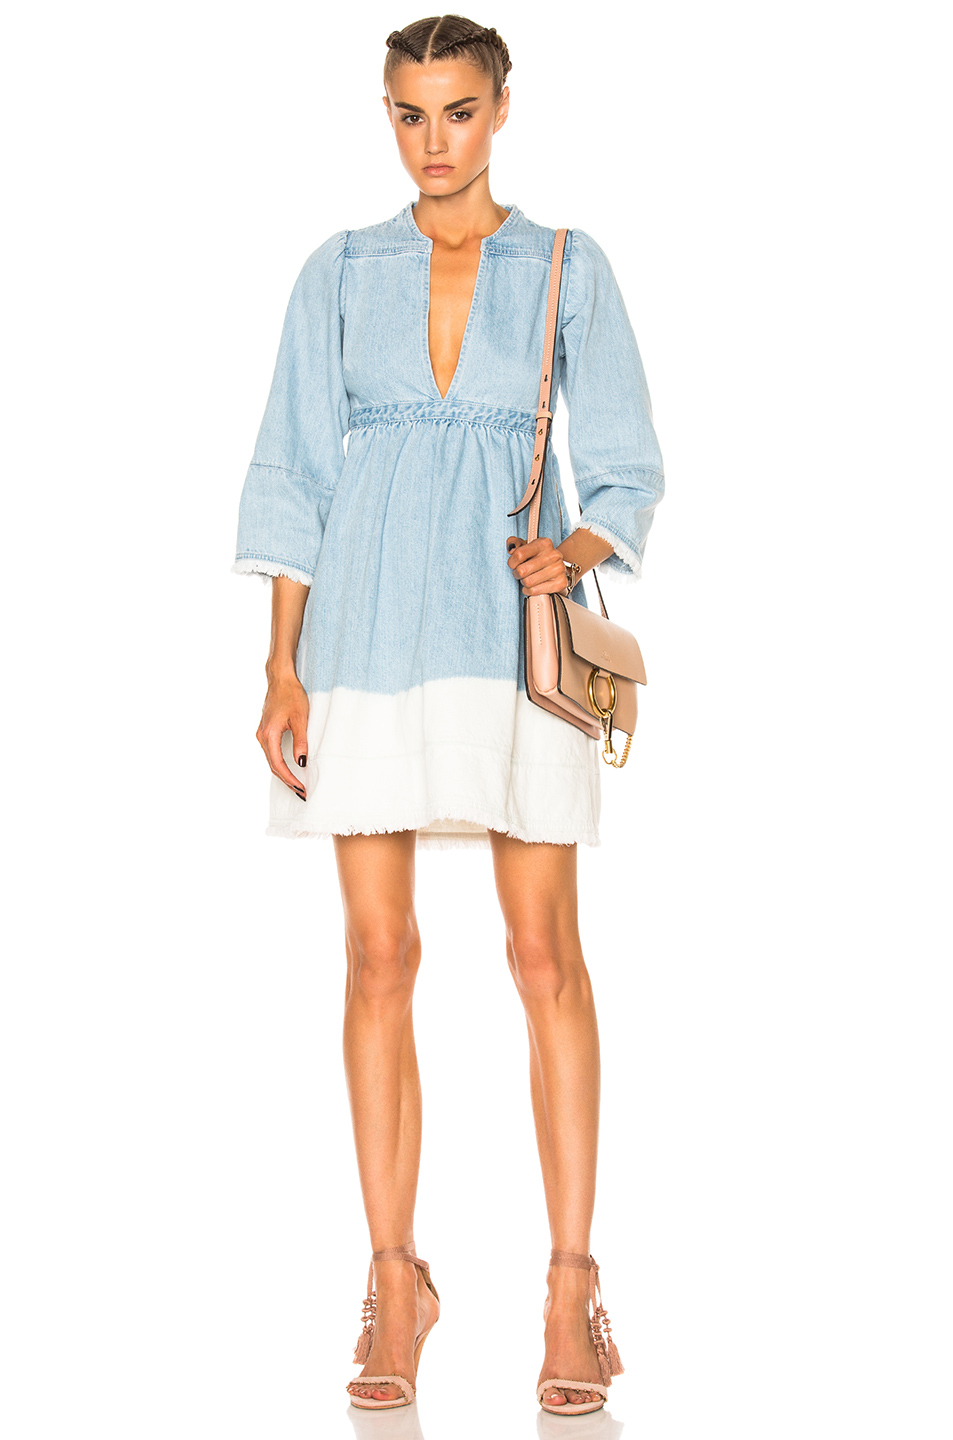 Ulla Johnson Alina Dress in Blue,White